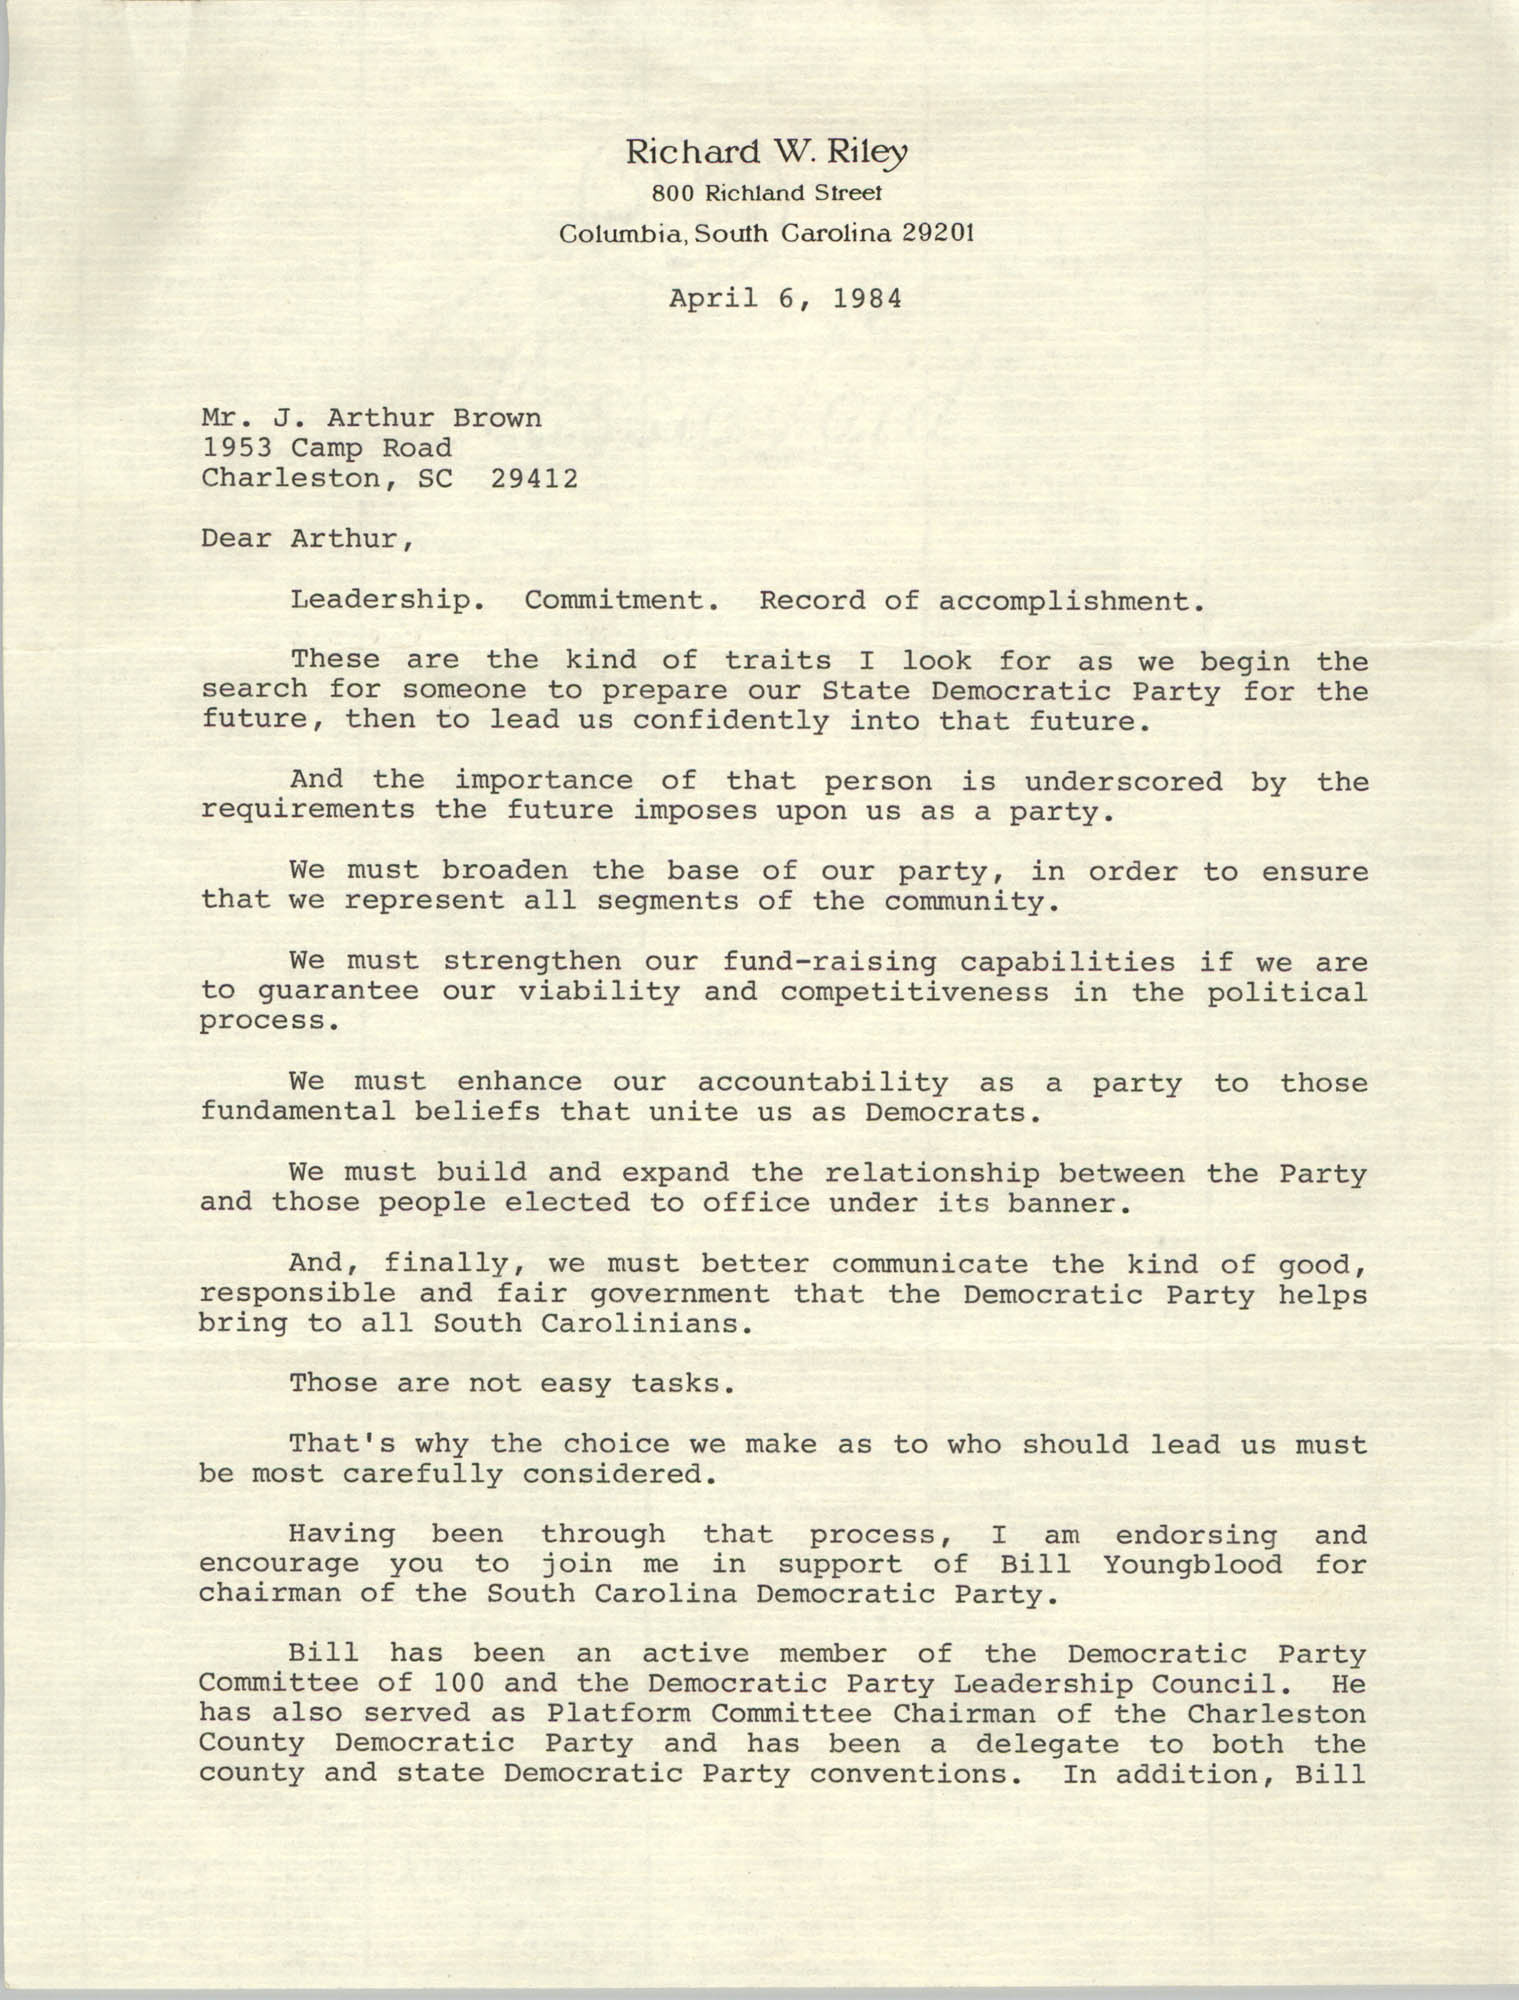 Letter from Richard W. Riley to J. Arthur Brown, April 6, 1984